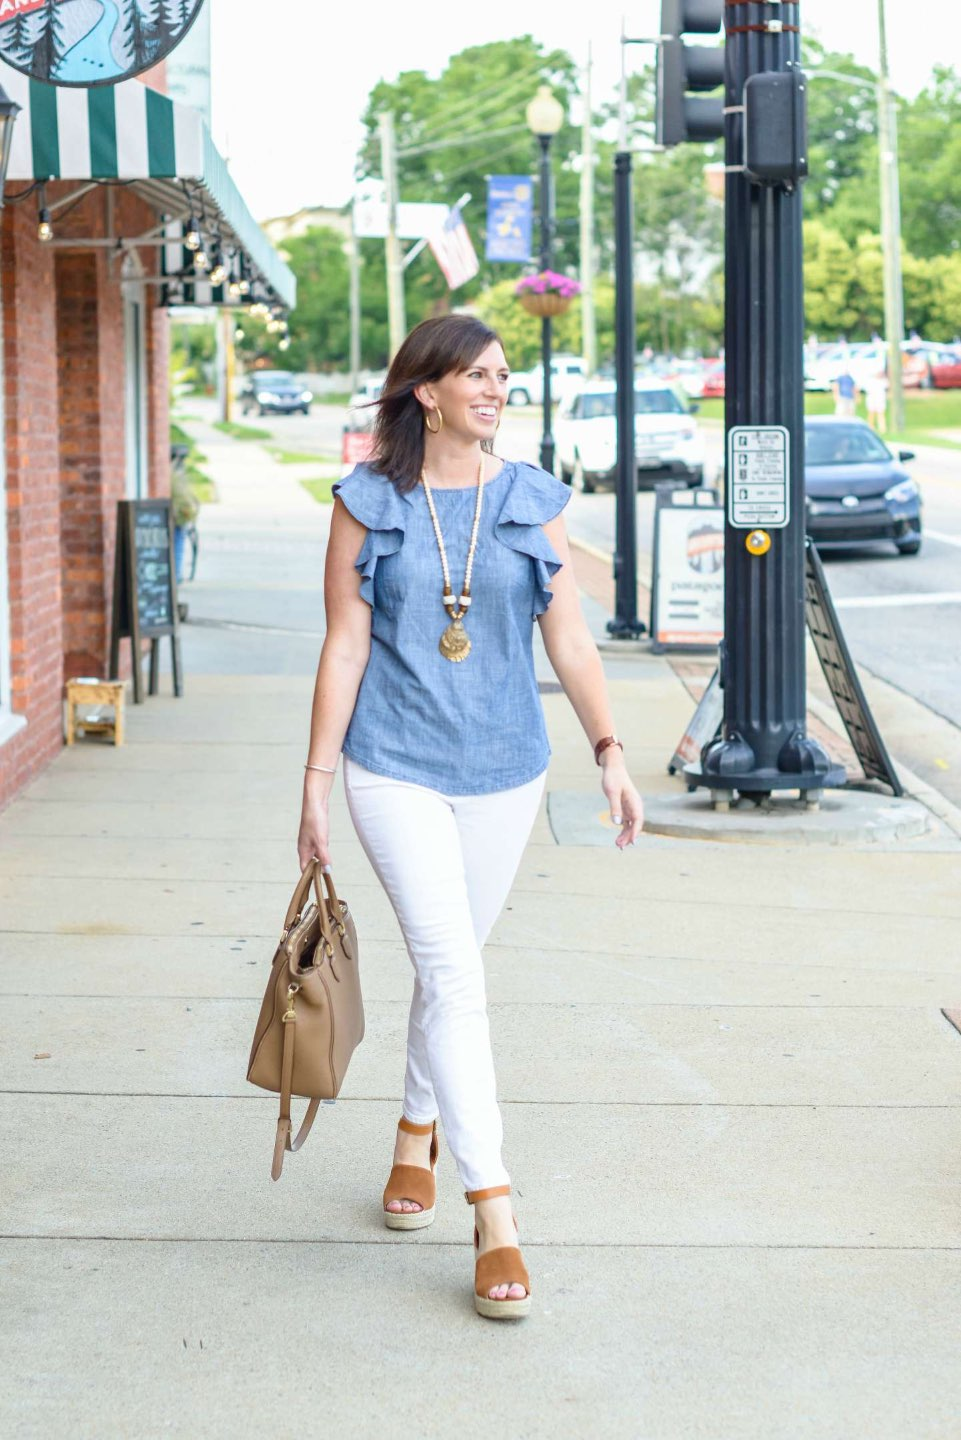 "Three 4th of July Outfit Ideas to Celebrate Independence Day - I'm Fixin' To - @mbg0112 | Three 4th of July Outfit Ideas to Celebrate Independence Day by popular North Carolina life and style blog, I'm Fixin' To: image of a woman walking down a sidewalk and wearing a Escalier Women's Denim Shirt Chambray Tencel V-Neck Jean Shirt Blouse, J. Crew 10"" highest-rise skinny jean in white denim, and Target Women's Morgan Two Piece Espadrille Wedge by Universal Thread."